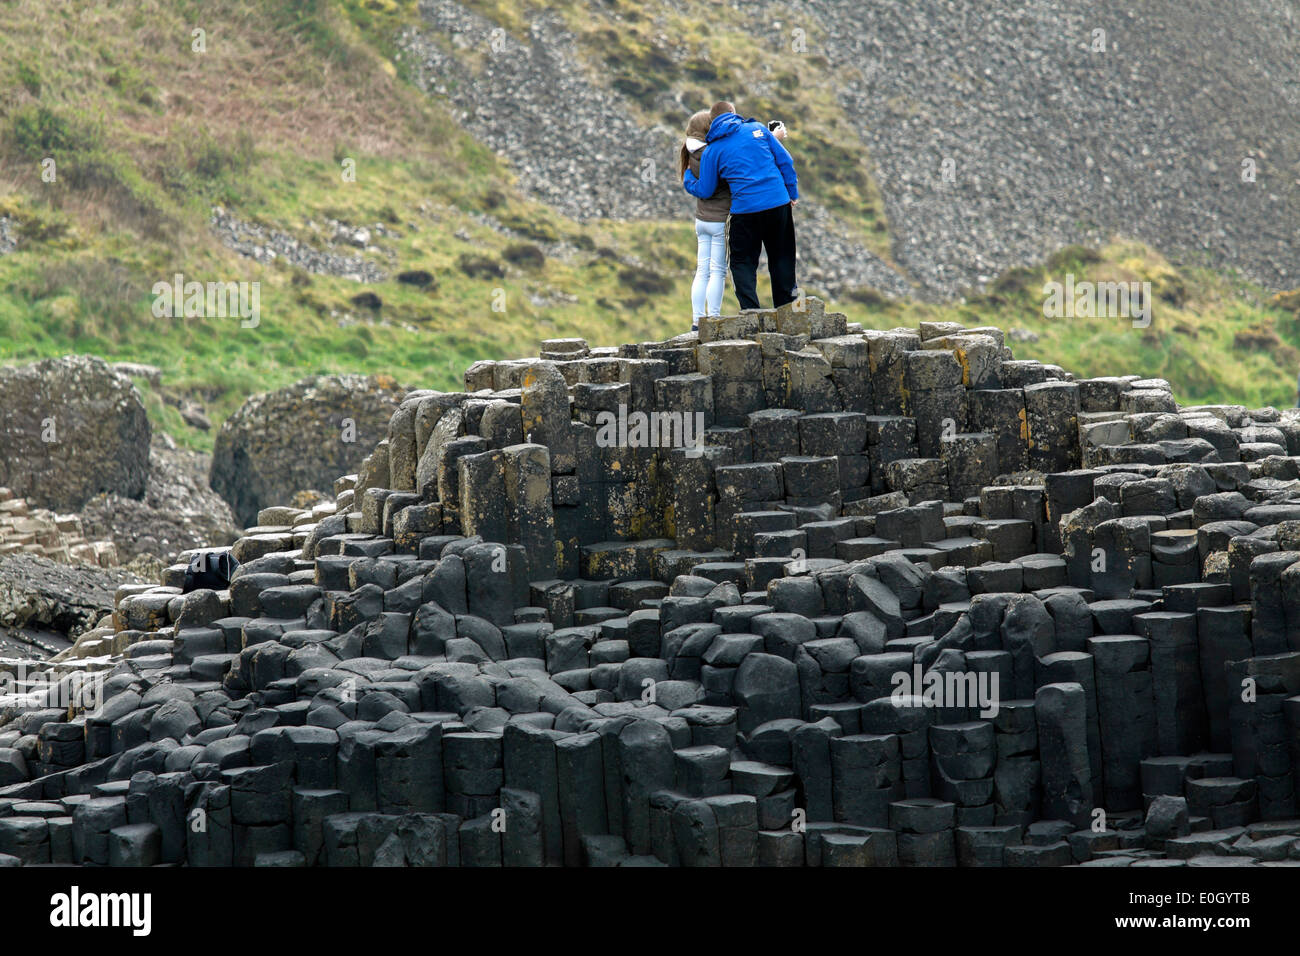 Couple standing on basalt stones at the Giant's Causeway, County Antrim, Northern Ireland, UK, a UNESCO World Heritage Site. - Stock Image